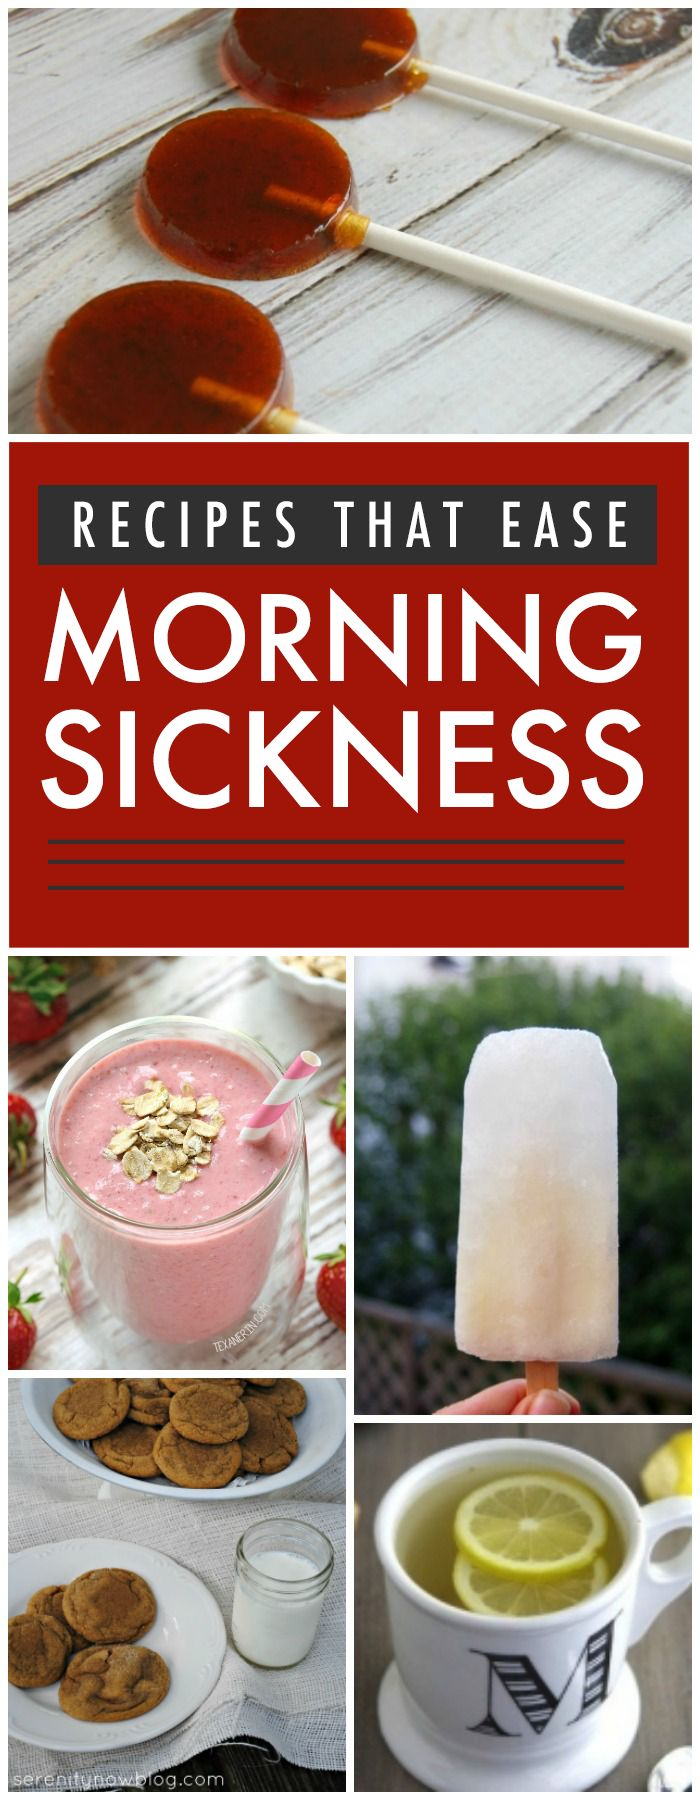 10 Recipes That Help Ease Morning Sickness. These foods also help with any nausea or upset stomach.